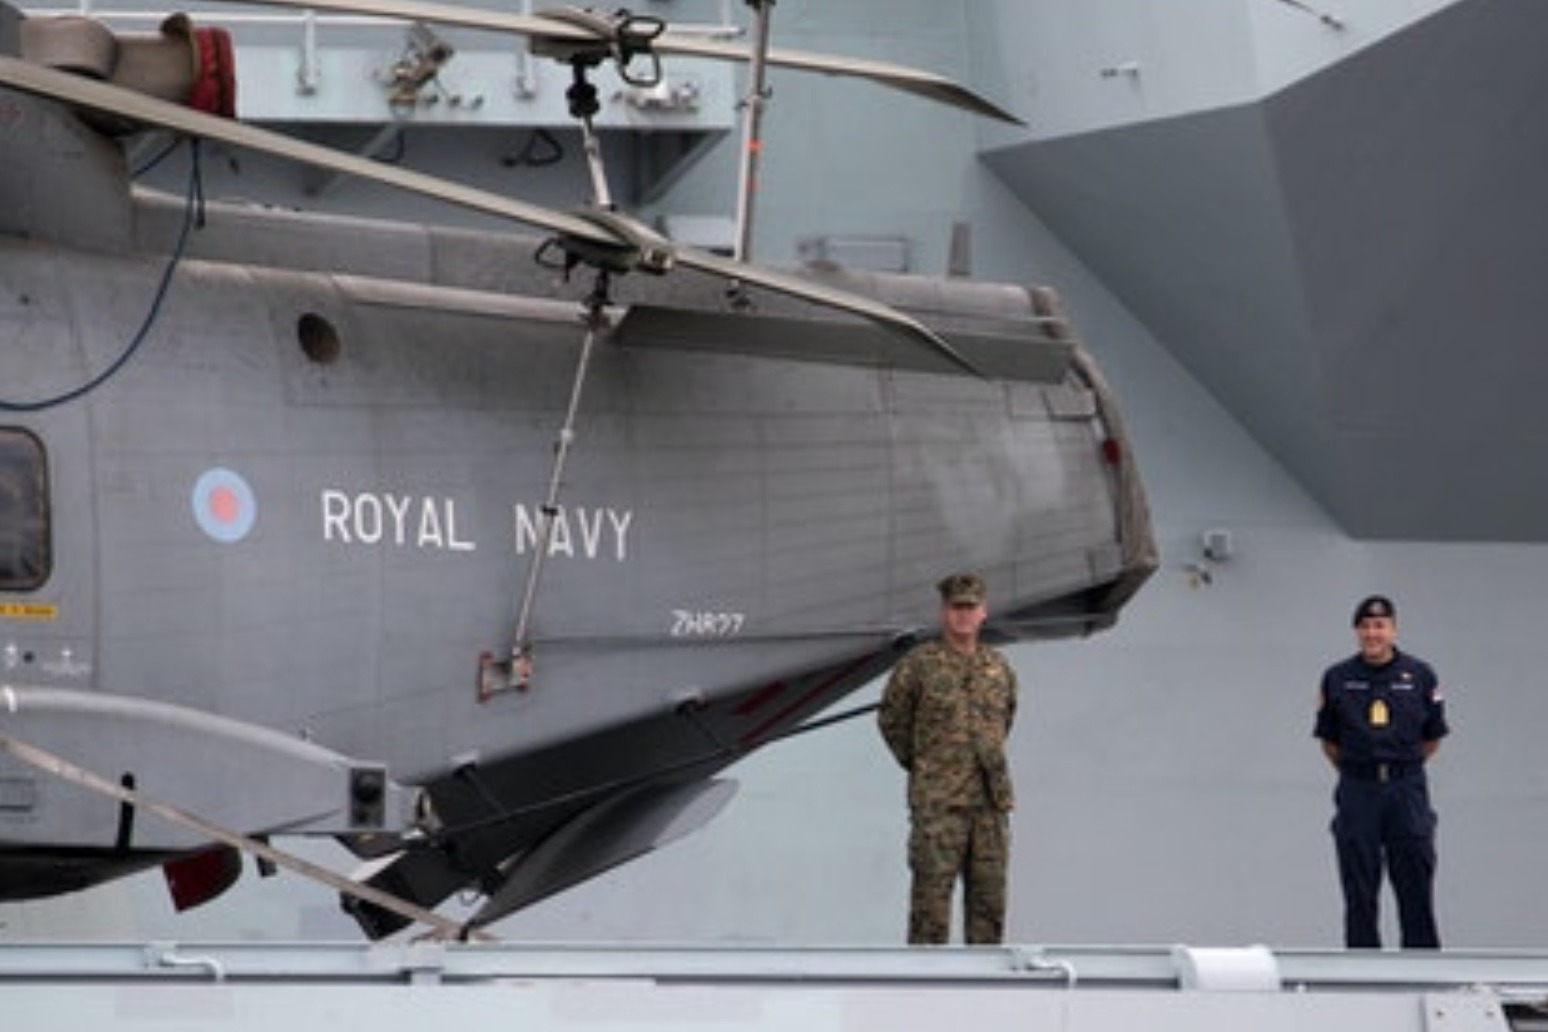 Nuclear submarine officer who arrived at work unfit for duty sent home from US